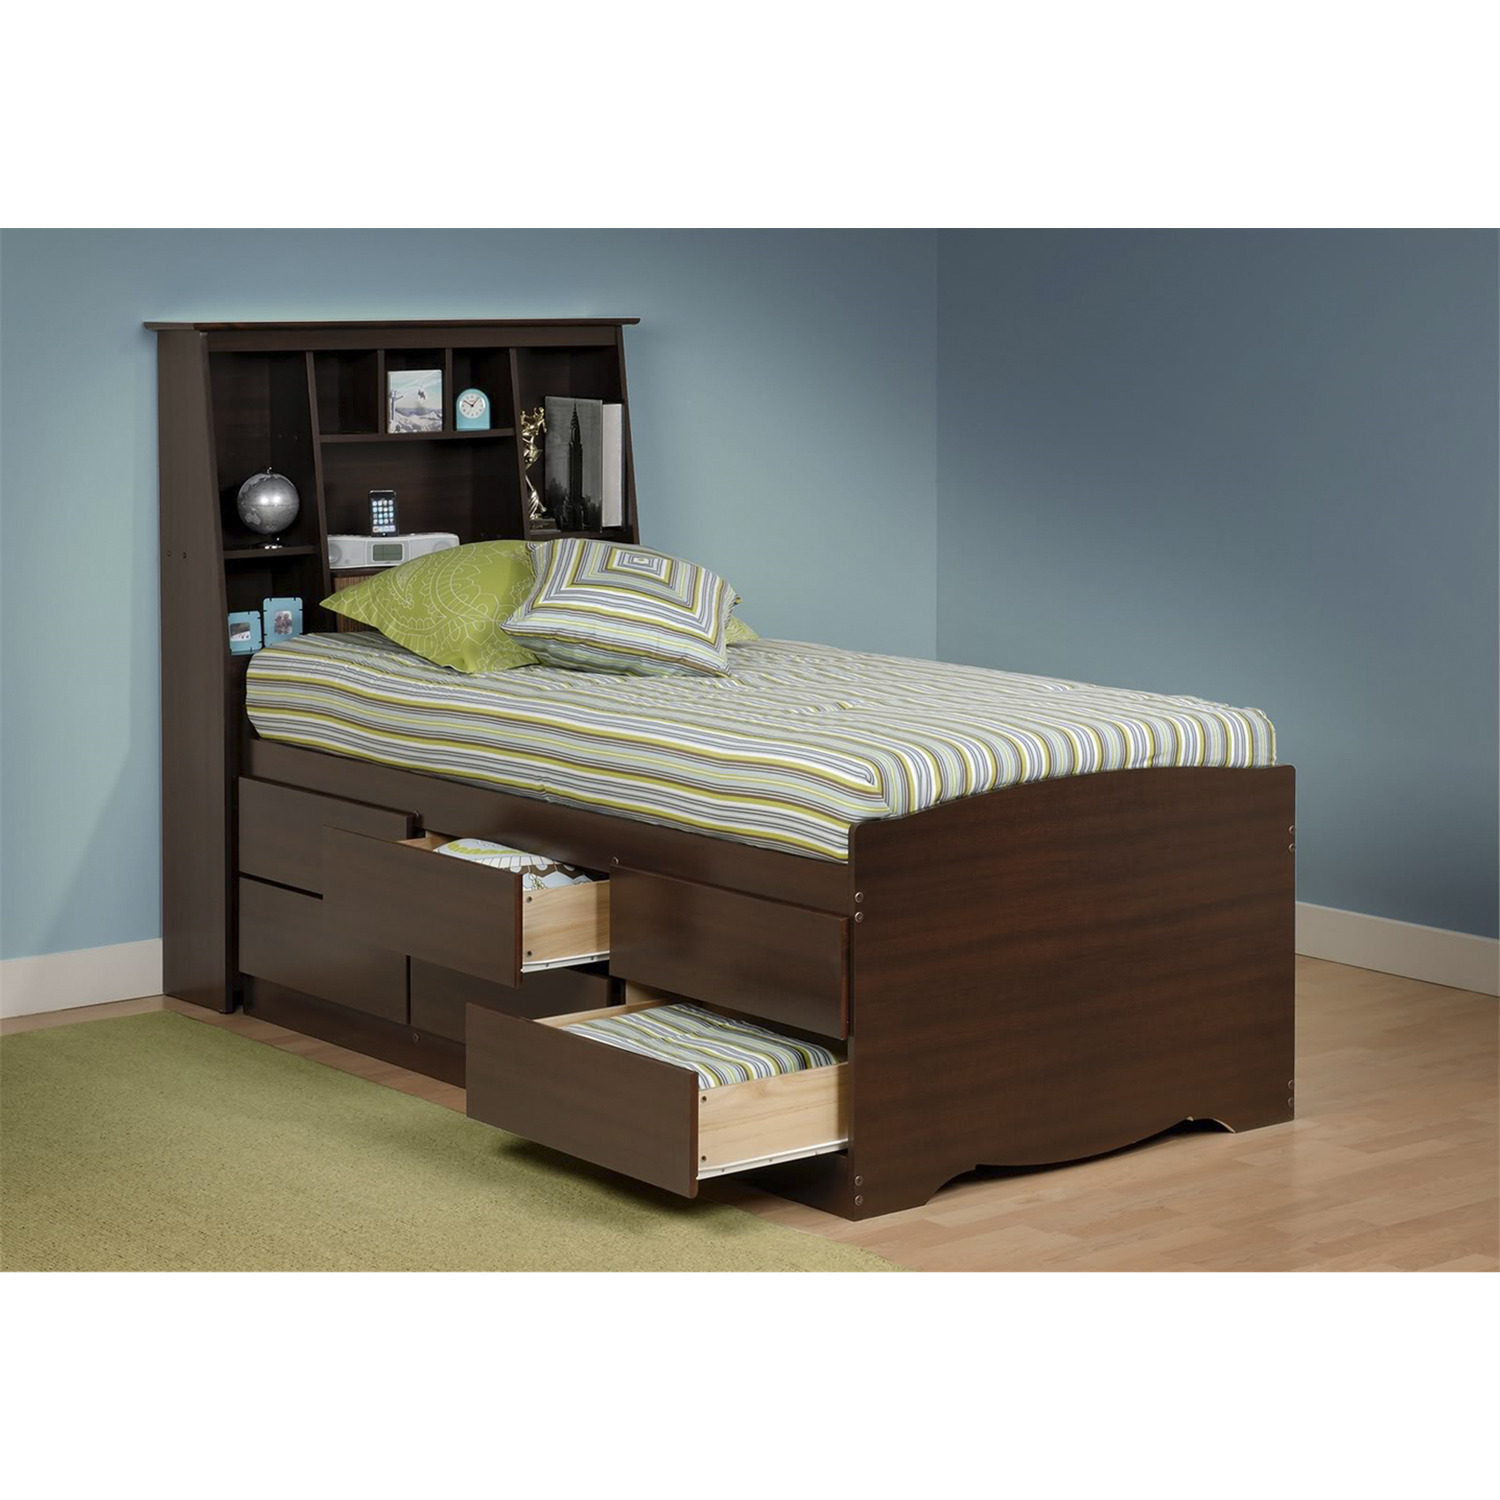 Tall captain 39 s platform storage bed w bookcase headboard for Bookshelf bed headboard